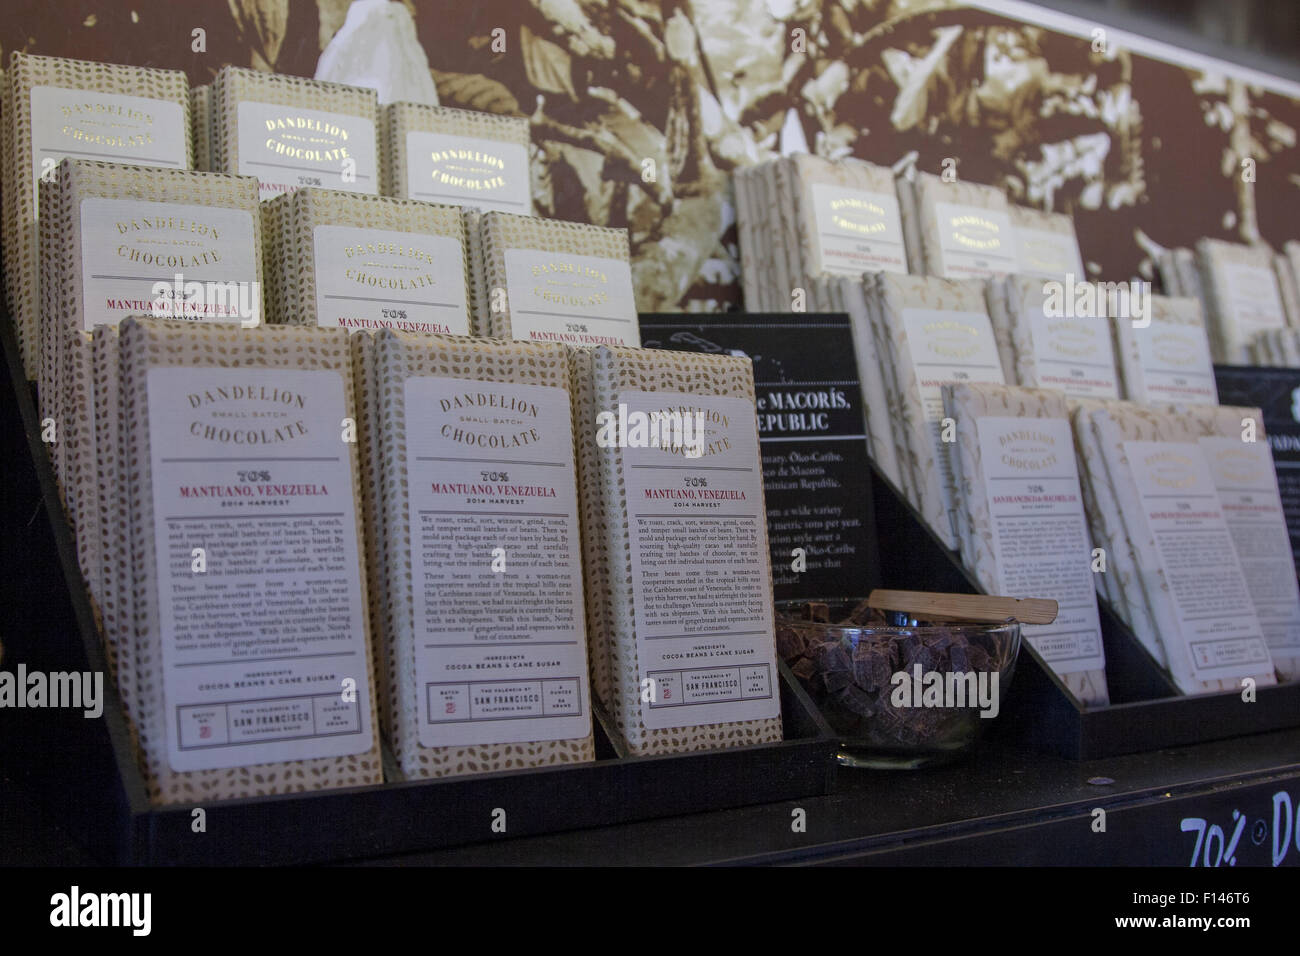 Dandelion Chocolate bars in the store at 740 Valencia St (at 18th ...